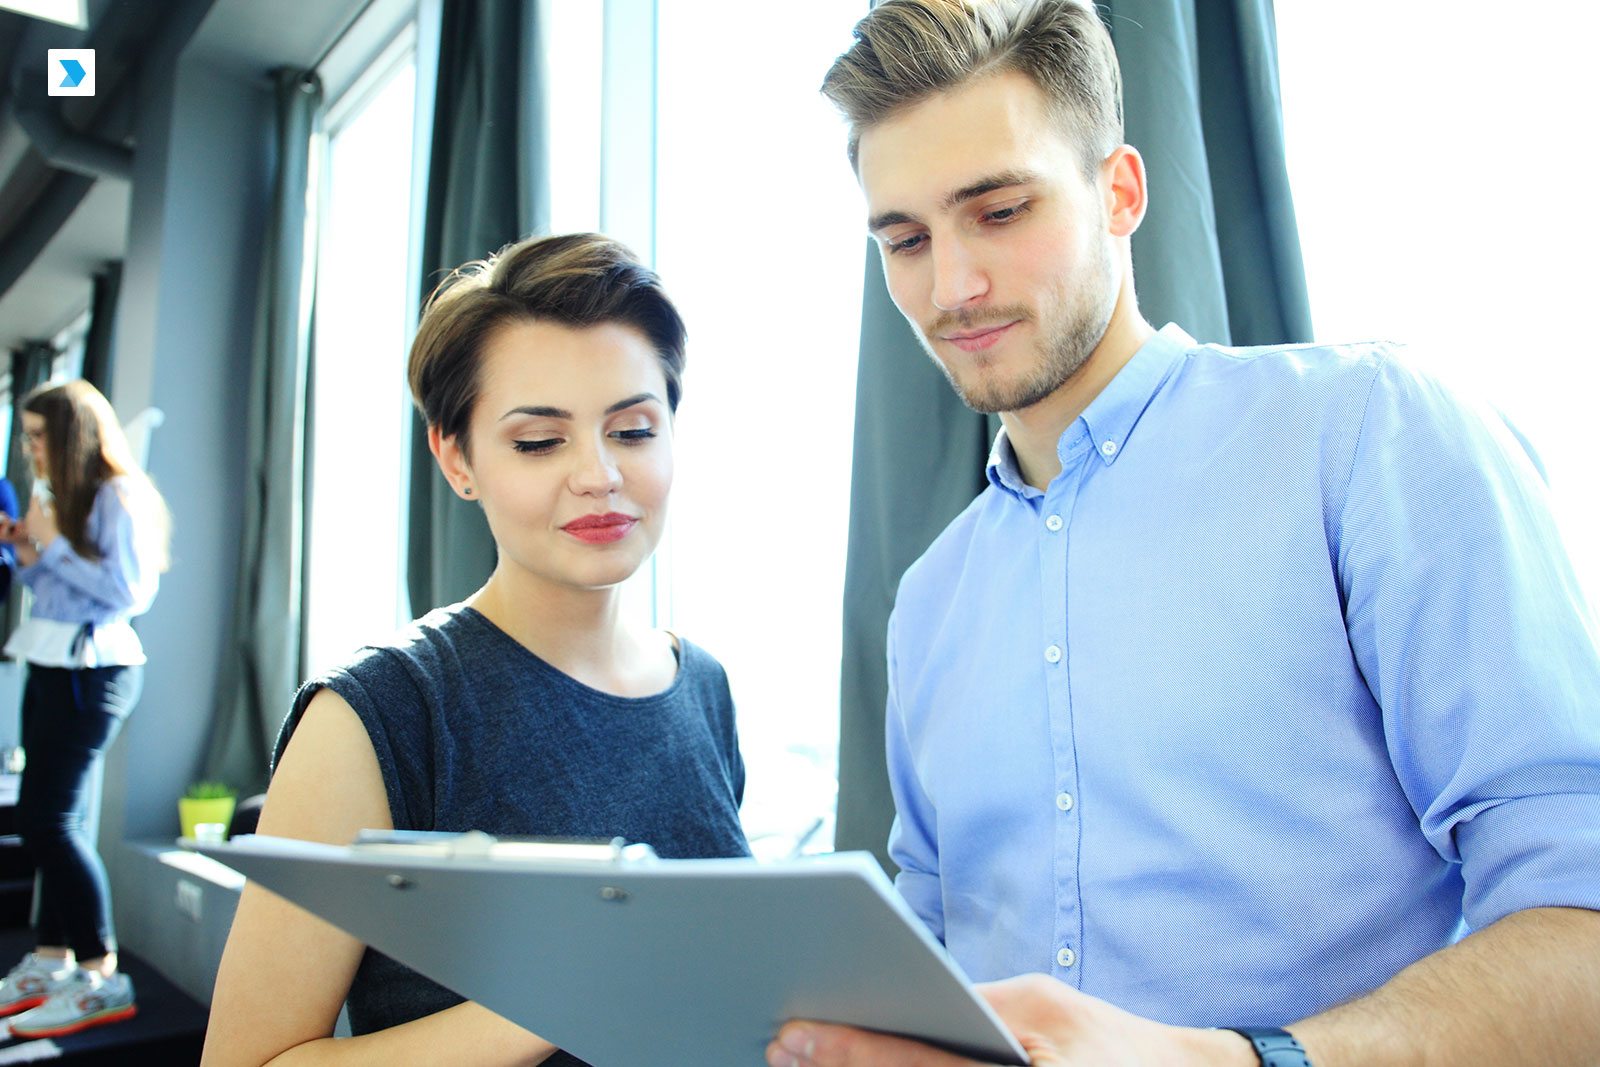 How to Ask Your Marketing Manager for a Raise